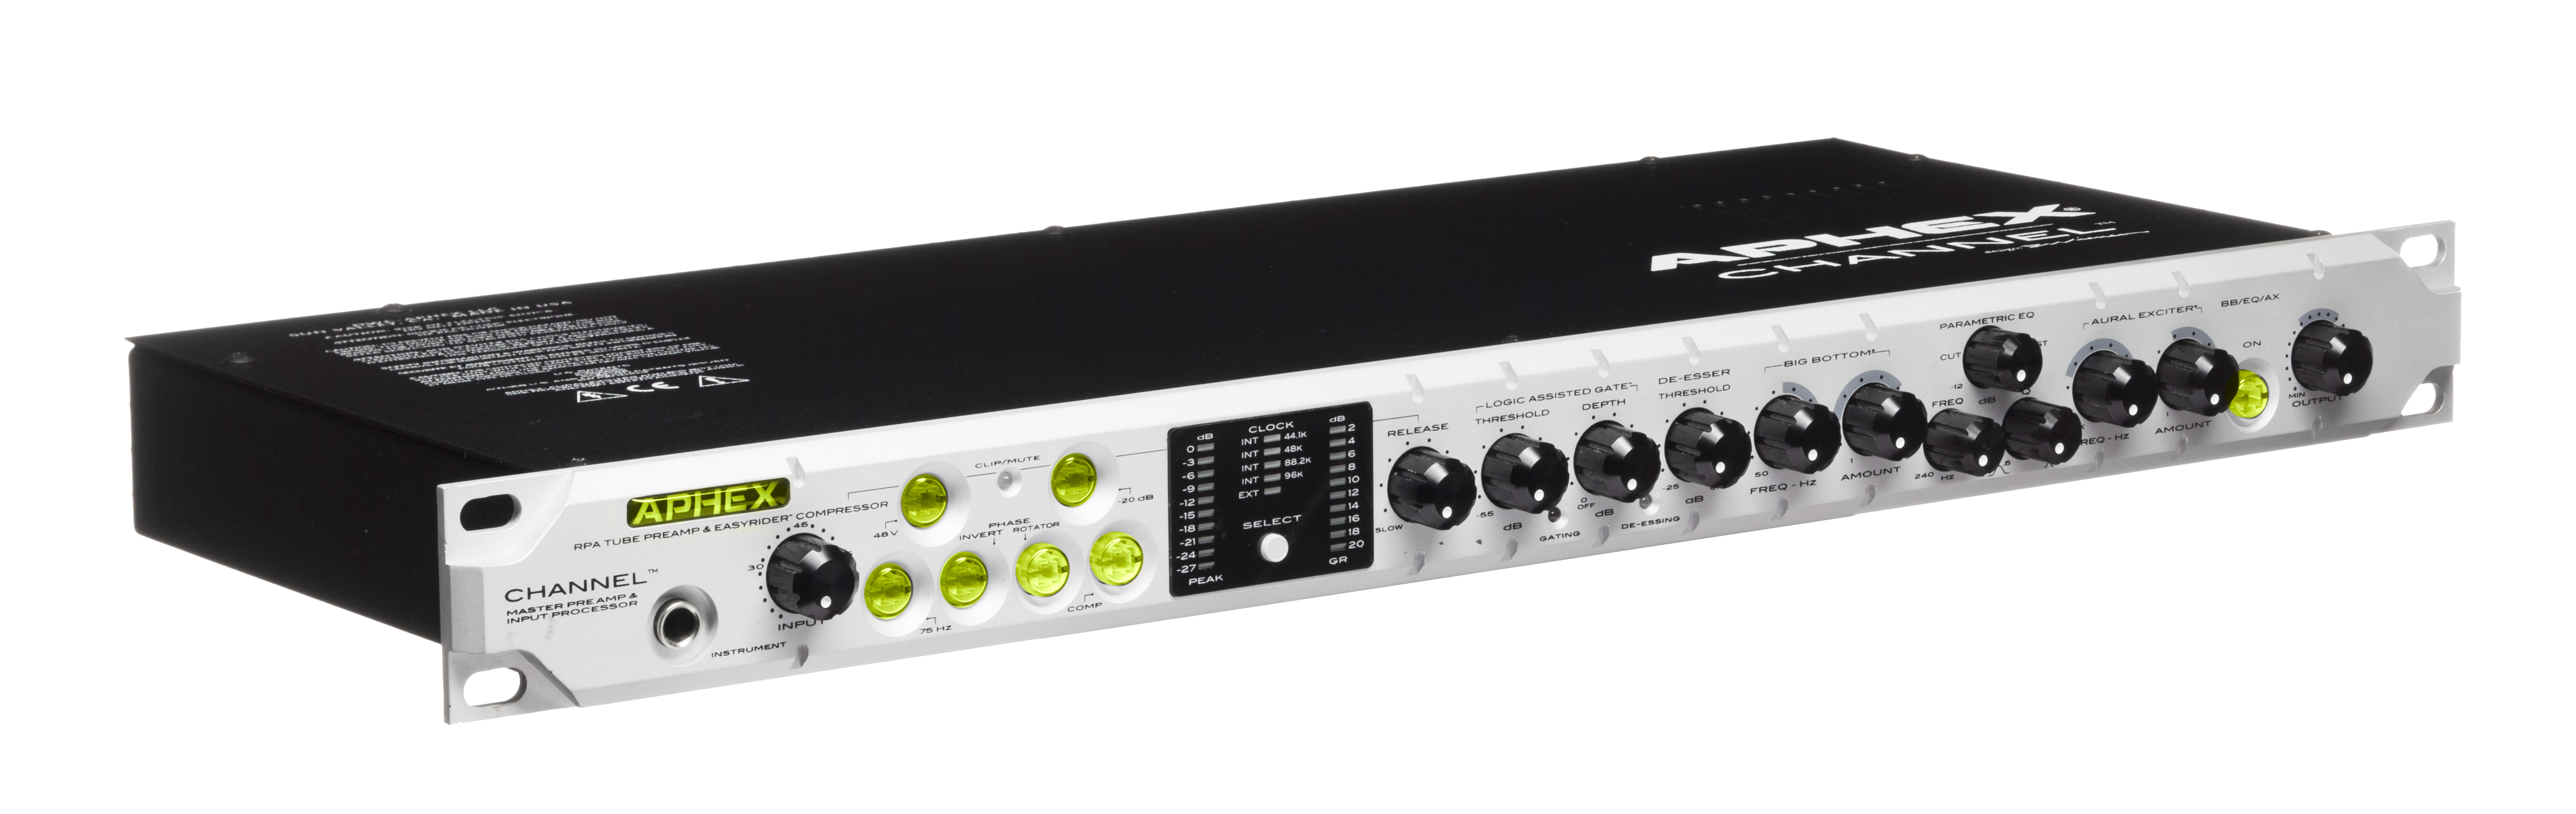 Channel Products For Professional Audio Recording Broadcast Preamp Circuits Microphone Amplifier Owners Manual